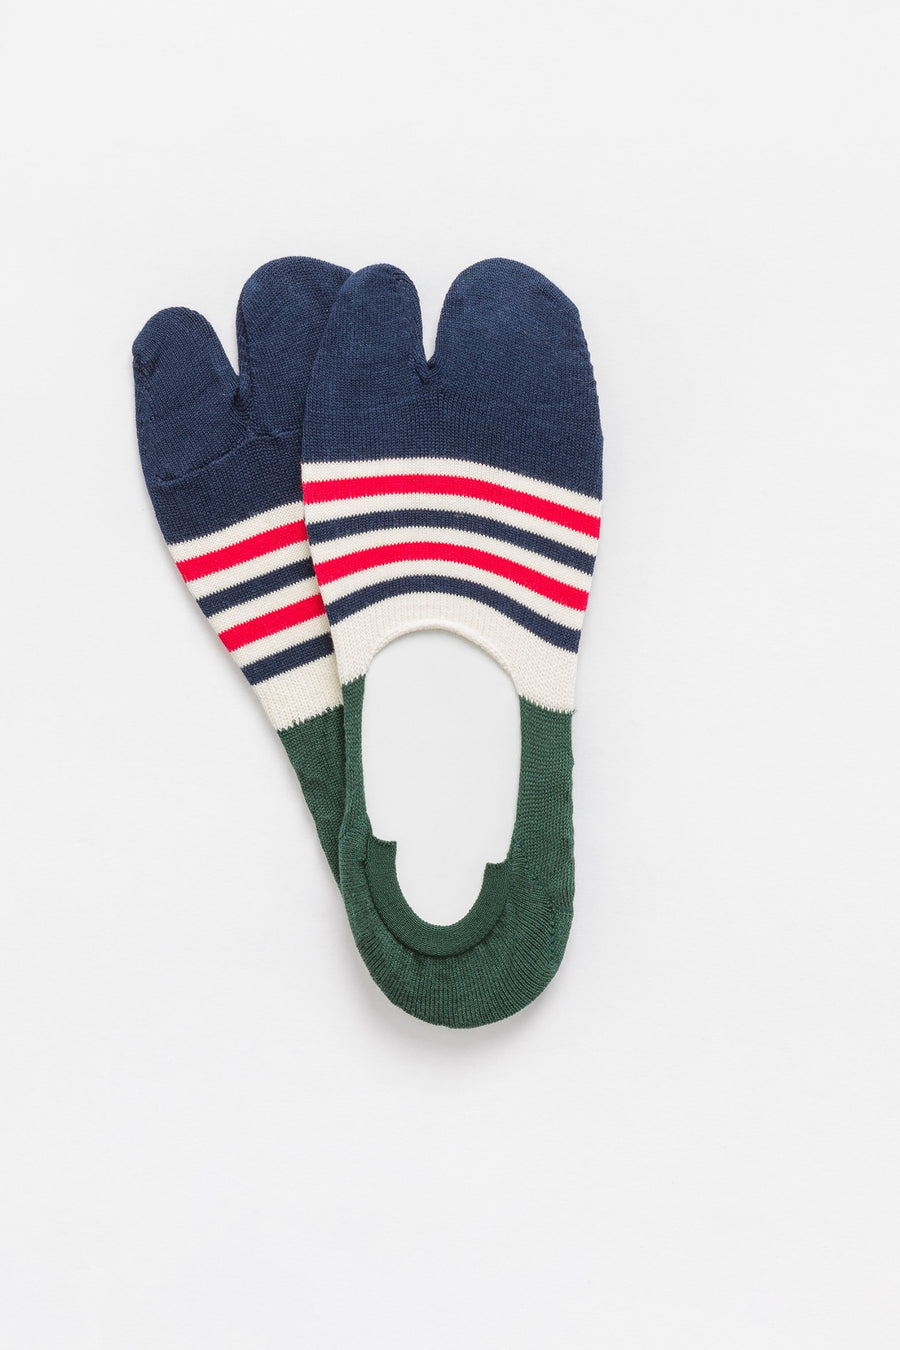 Chup 3 Point Grip Socks in Navy/Green/Red - Notre